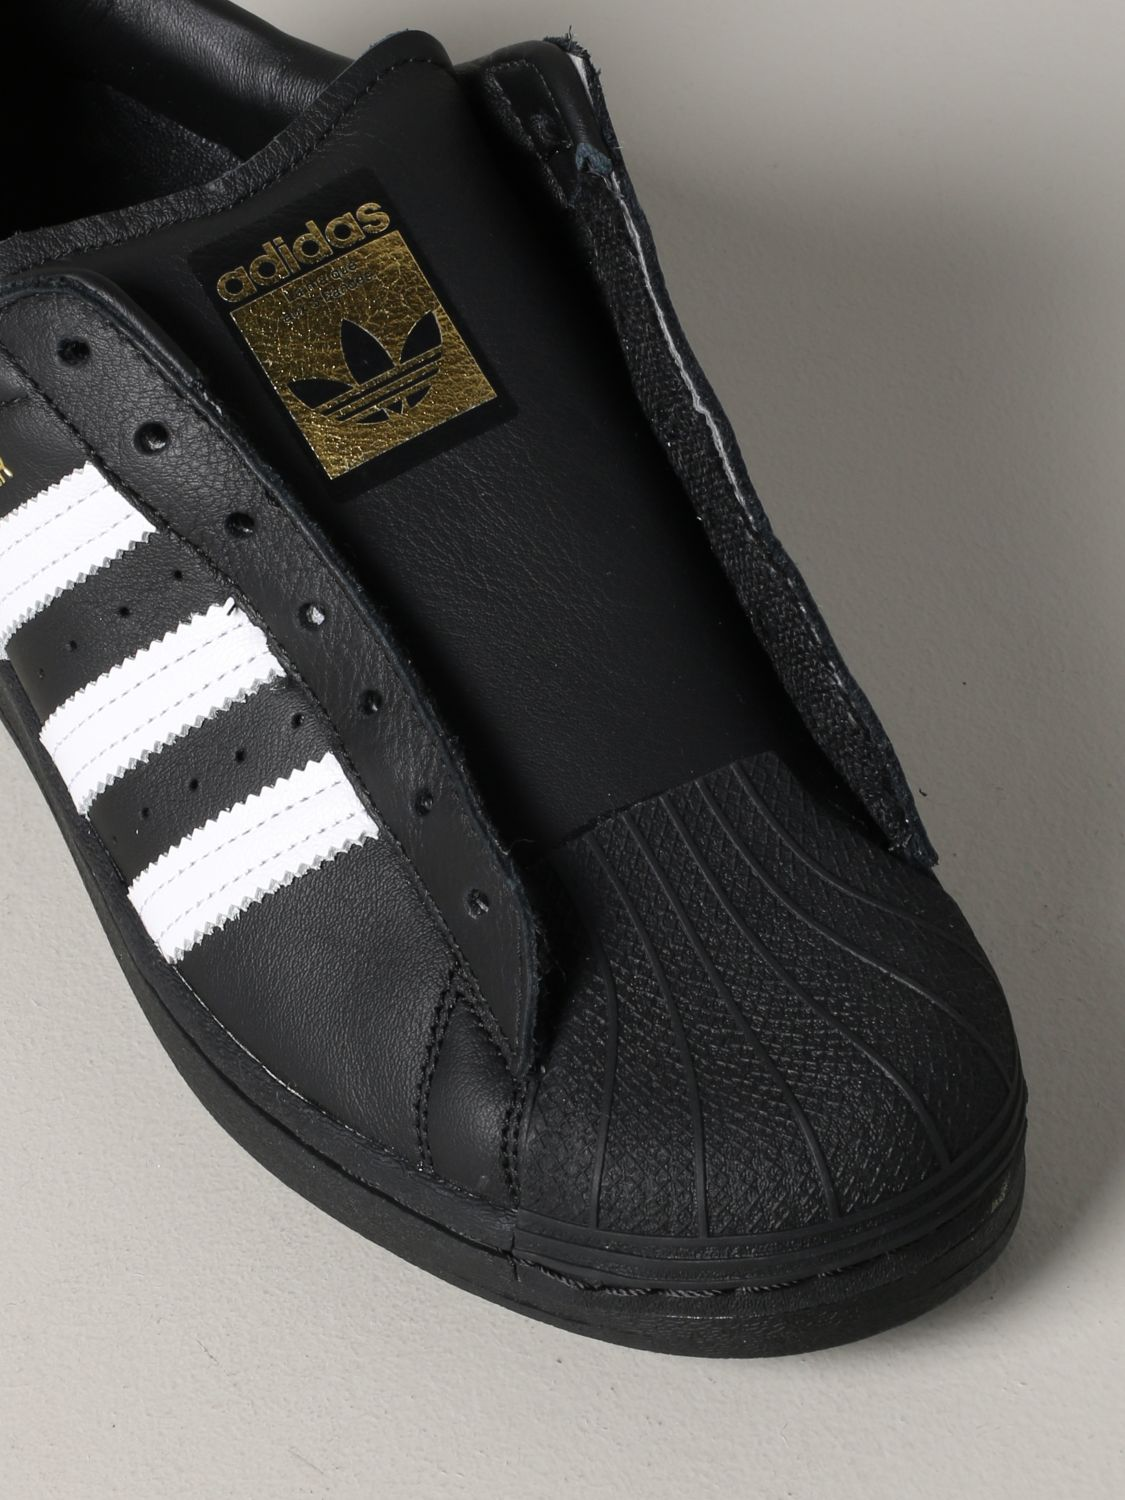 Trainers Adidas Originals: Shoes men Adidas Originals black 4